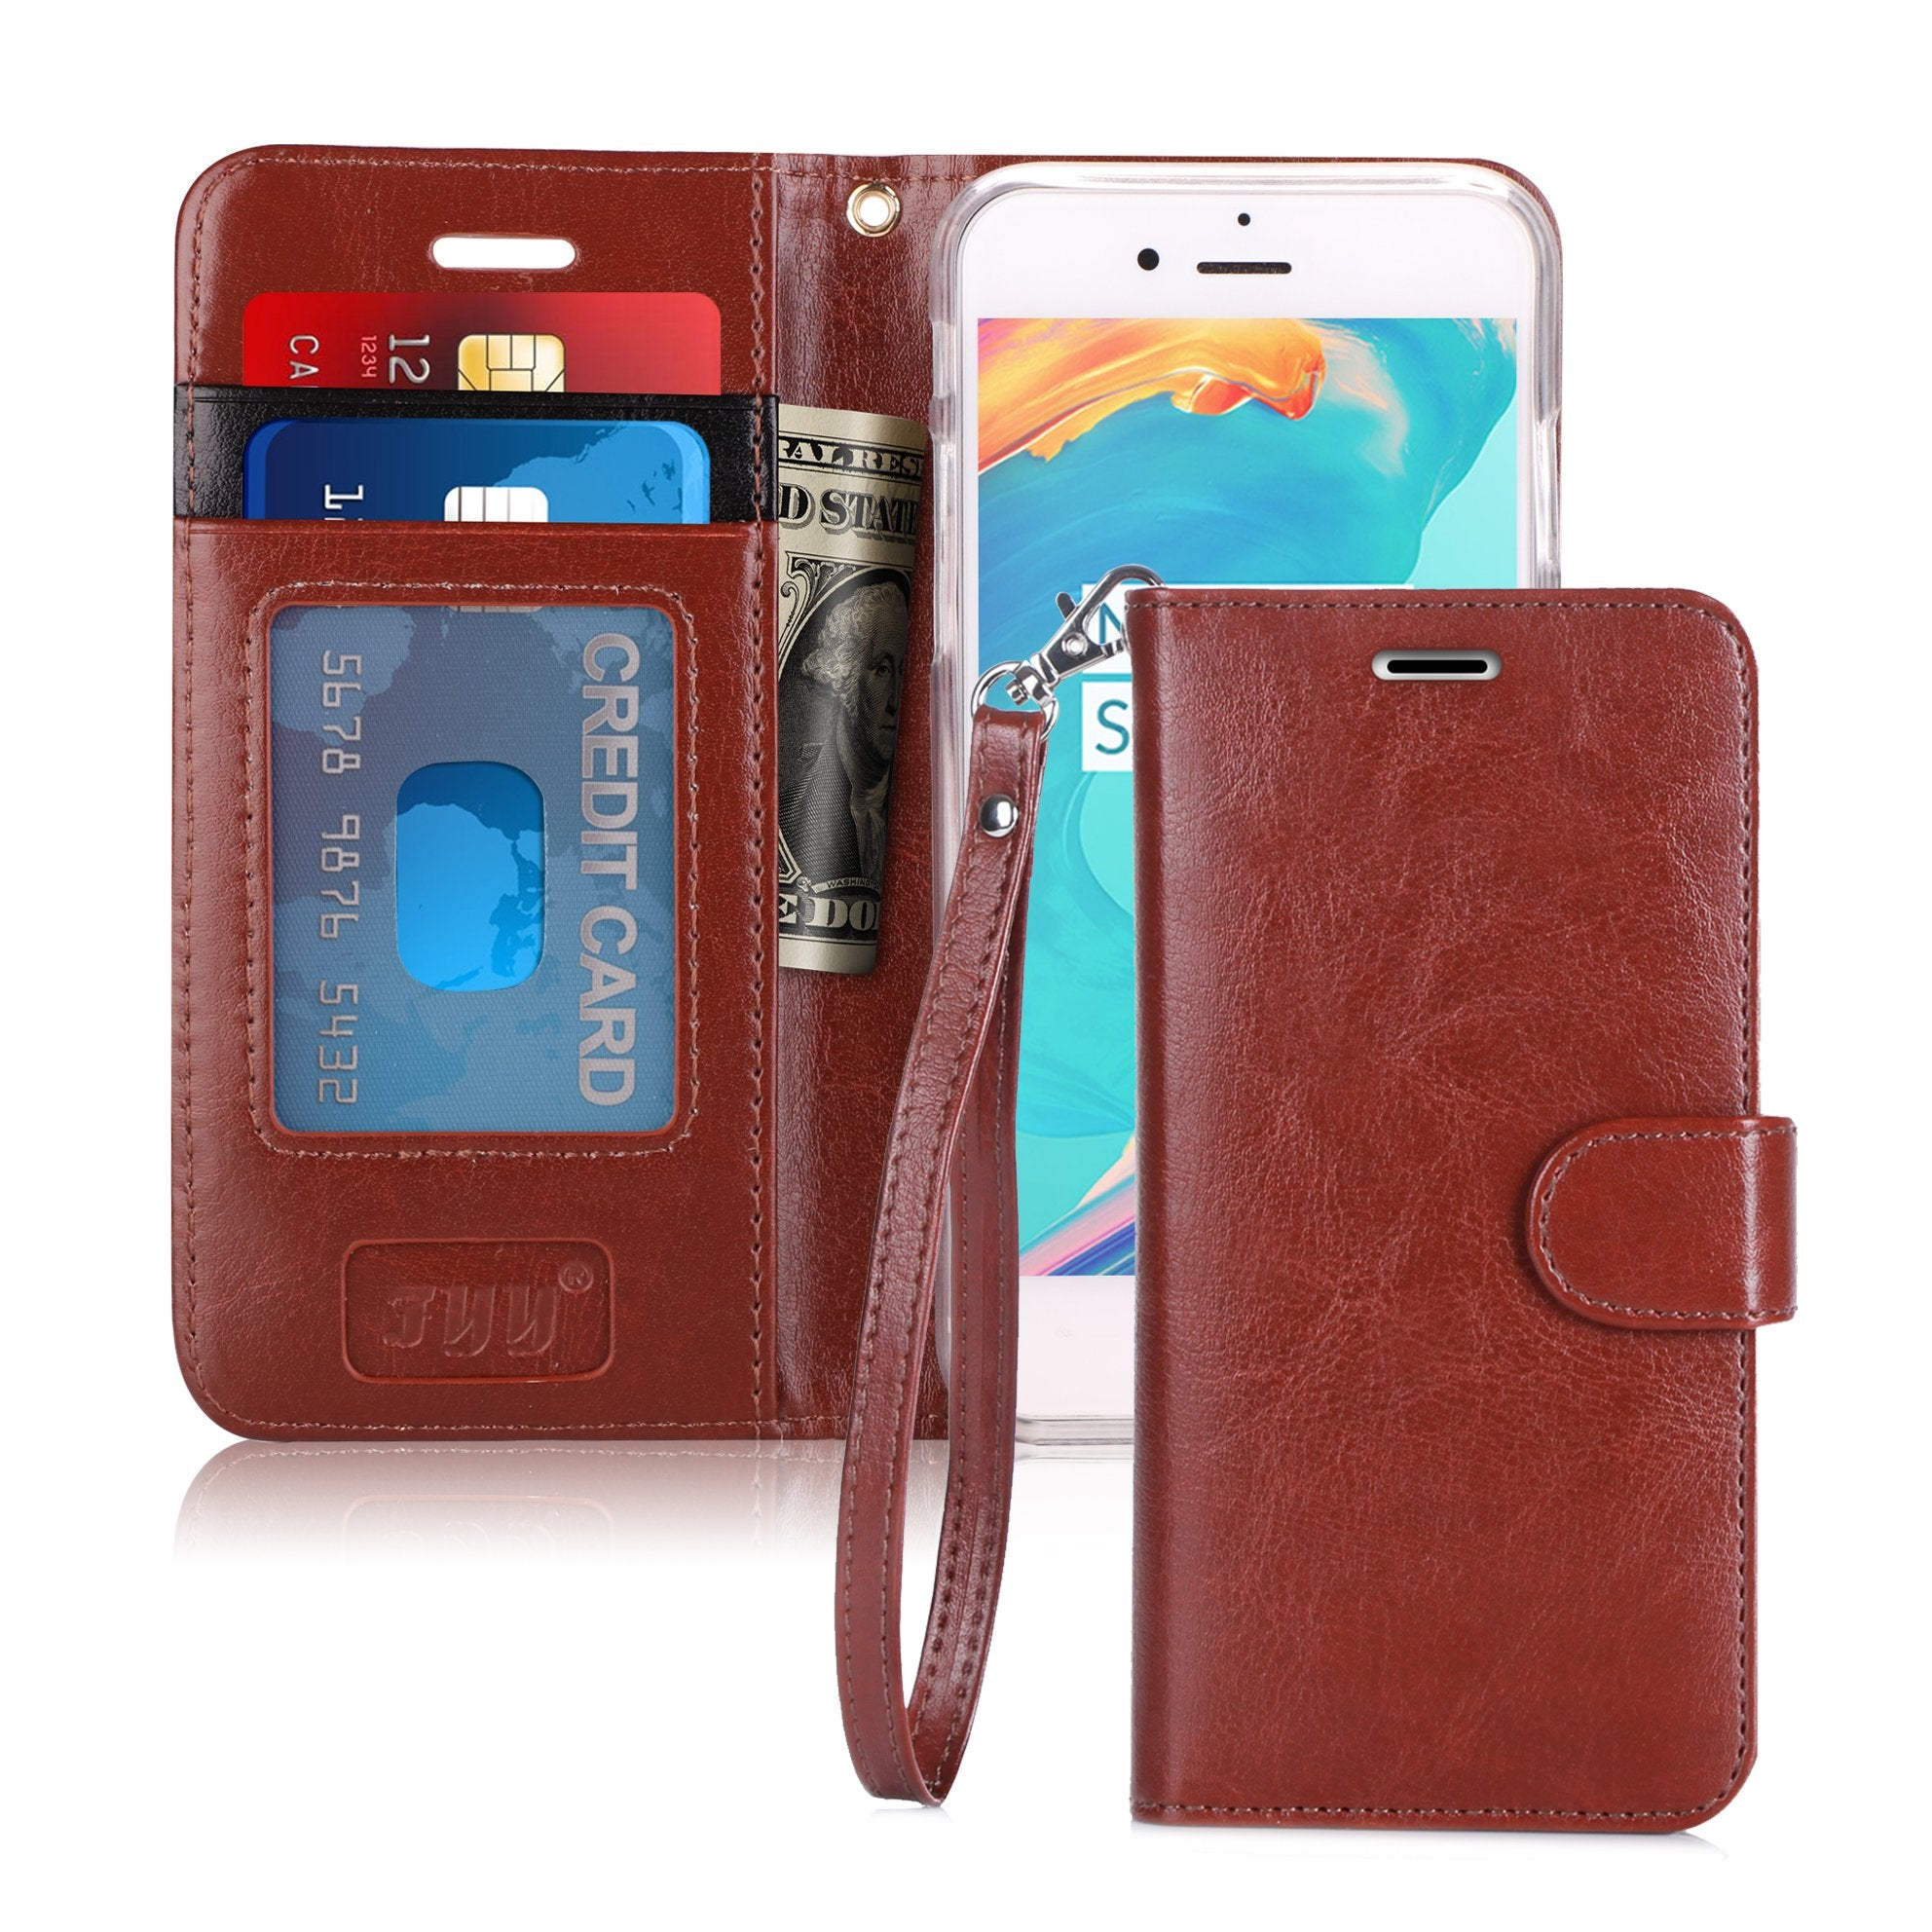 Leather Wallet Case for iPhone 8/7